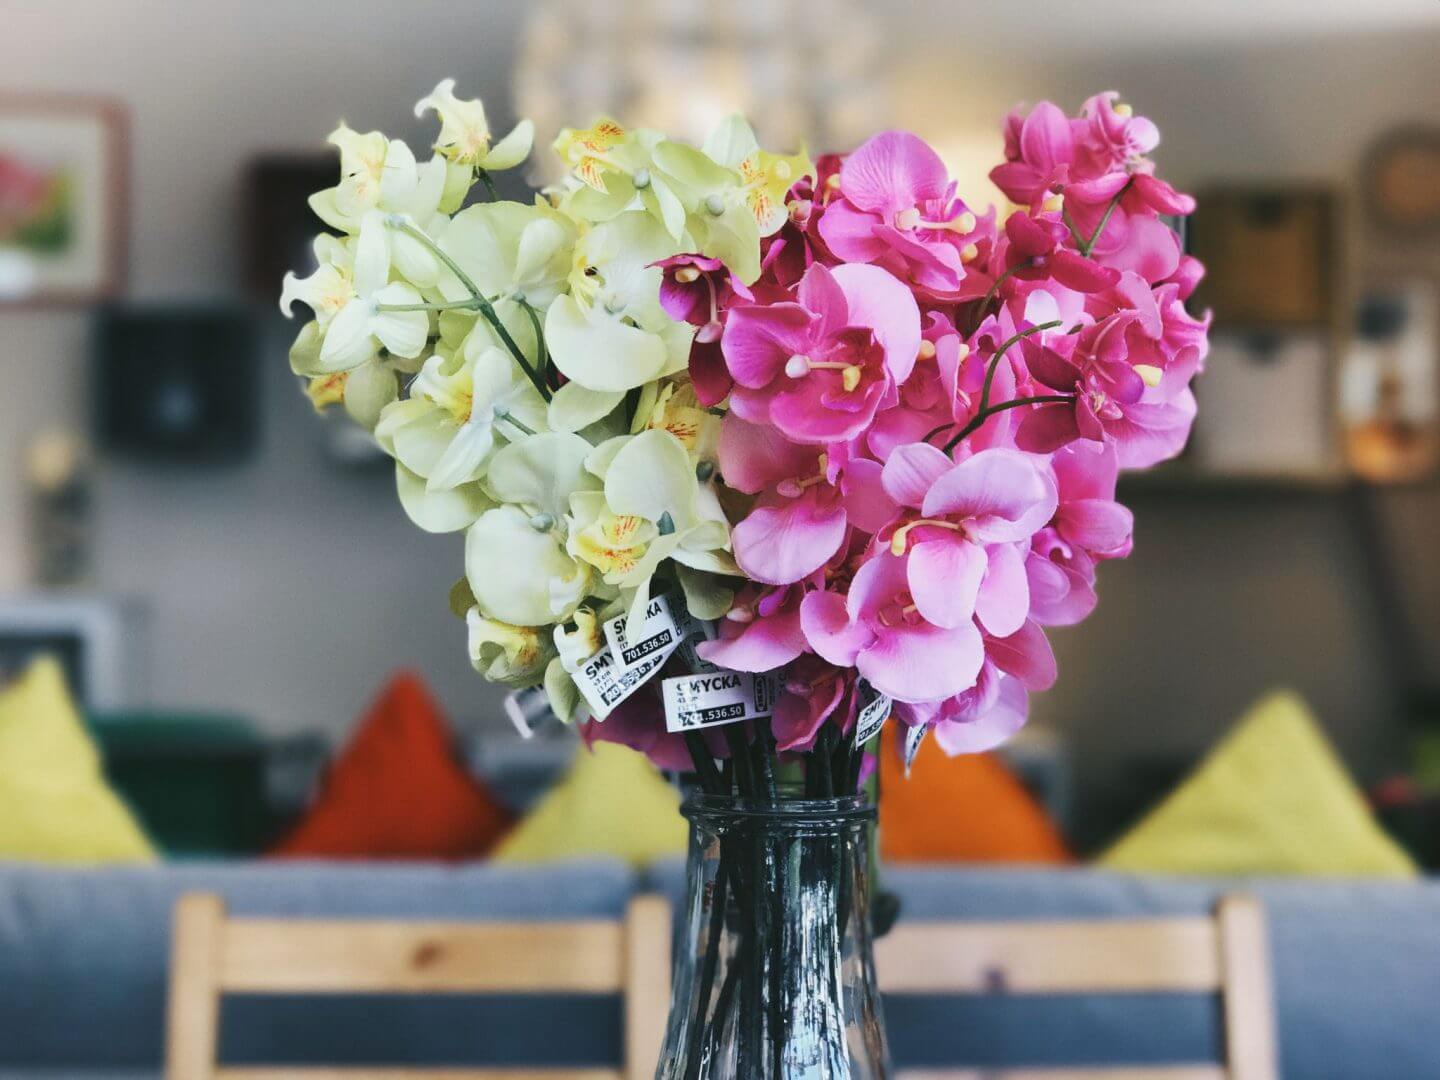 get your home ready for autumn - pink and yellow flowers in a vase